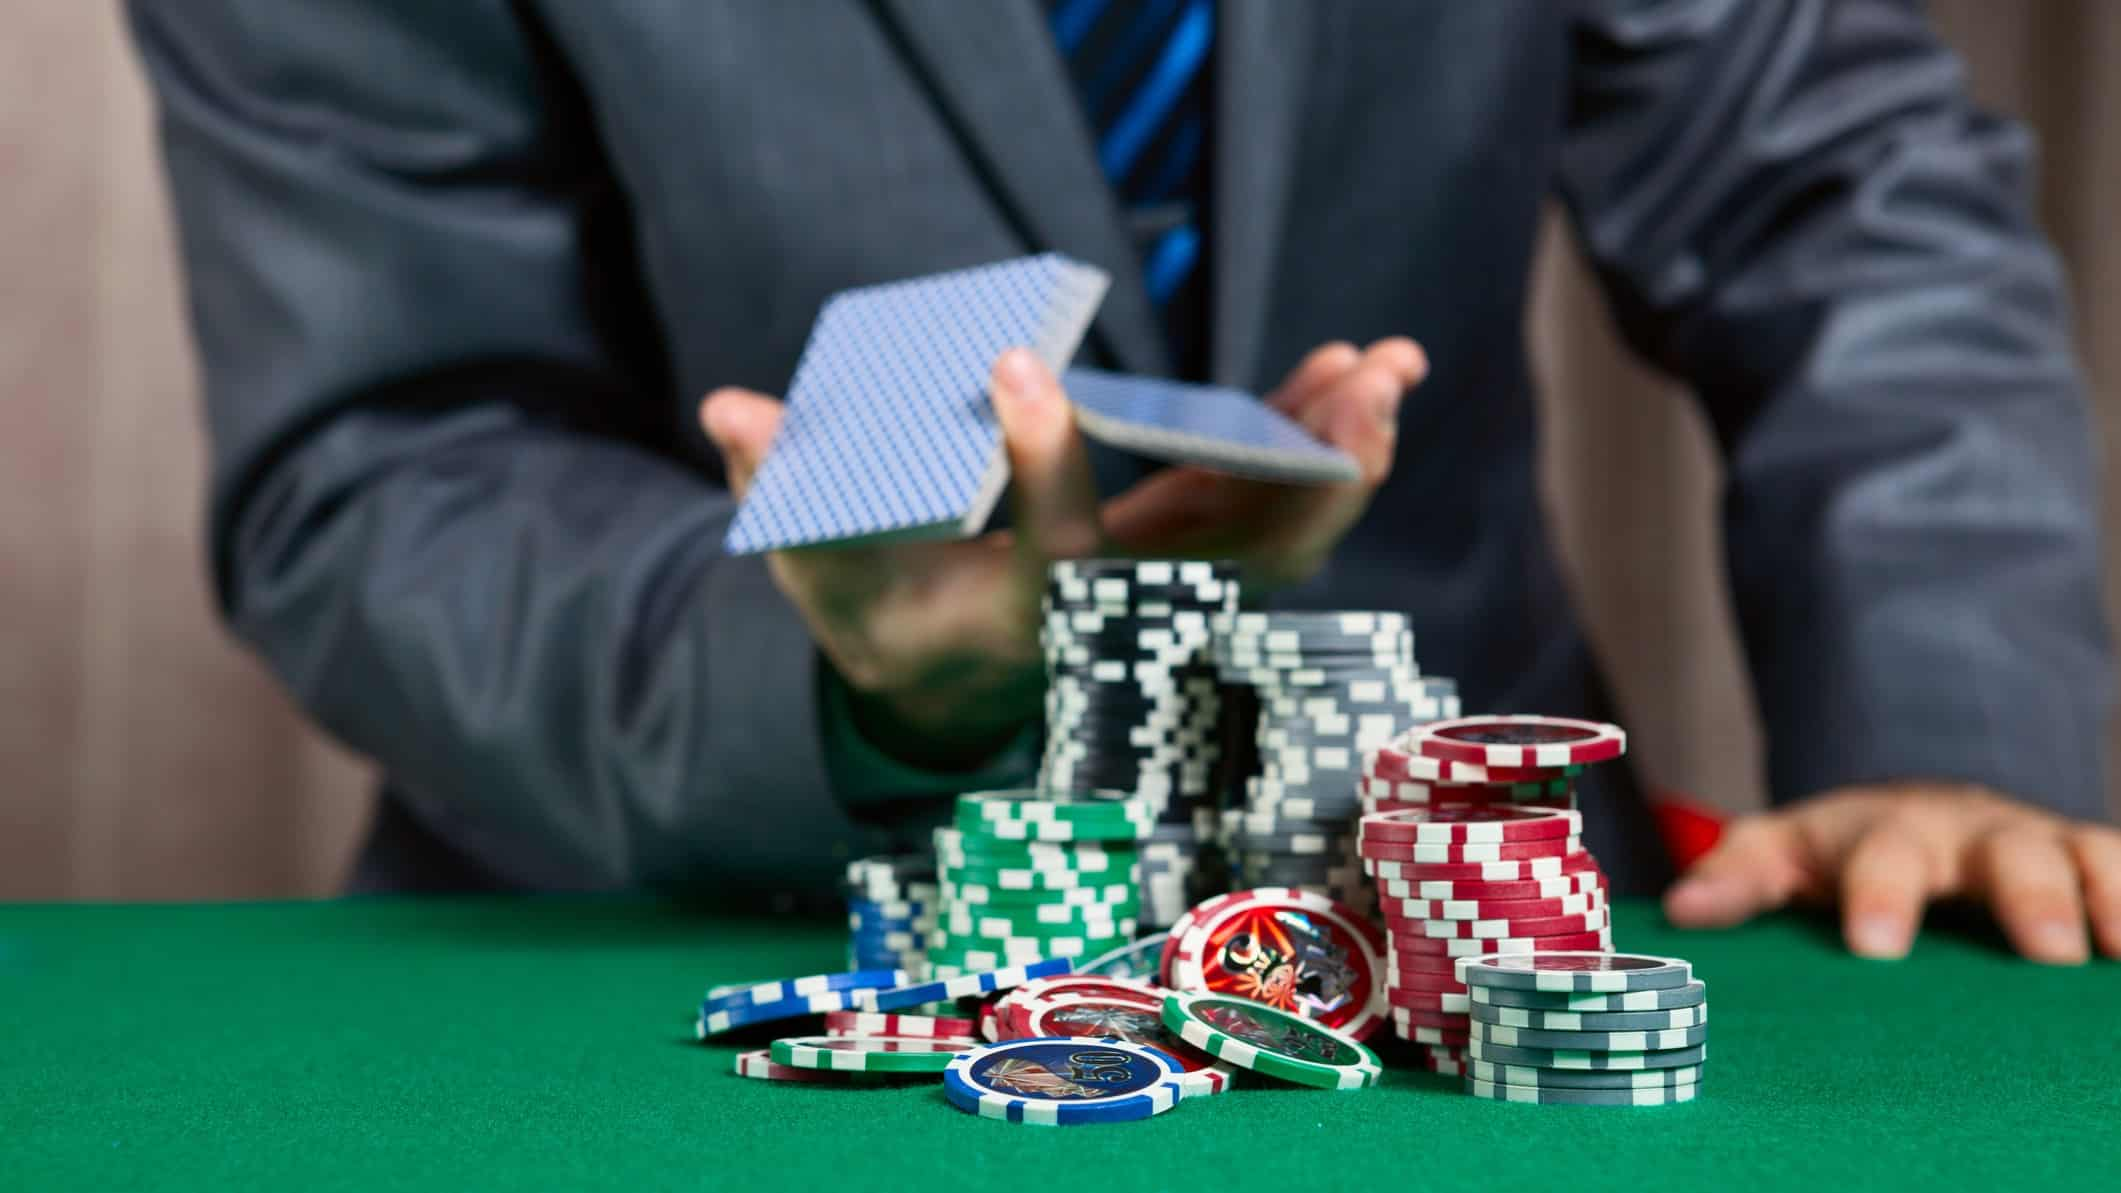 man playing cards with casino chips representing crown share price